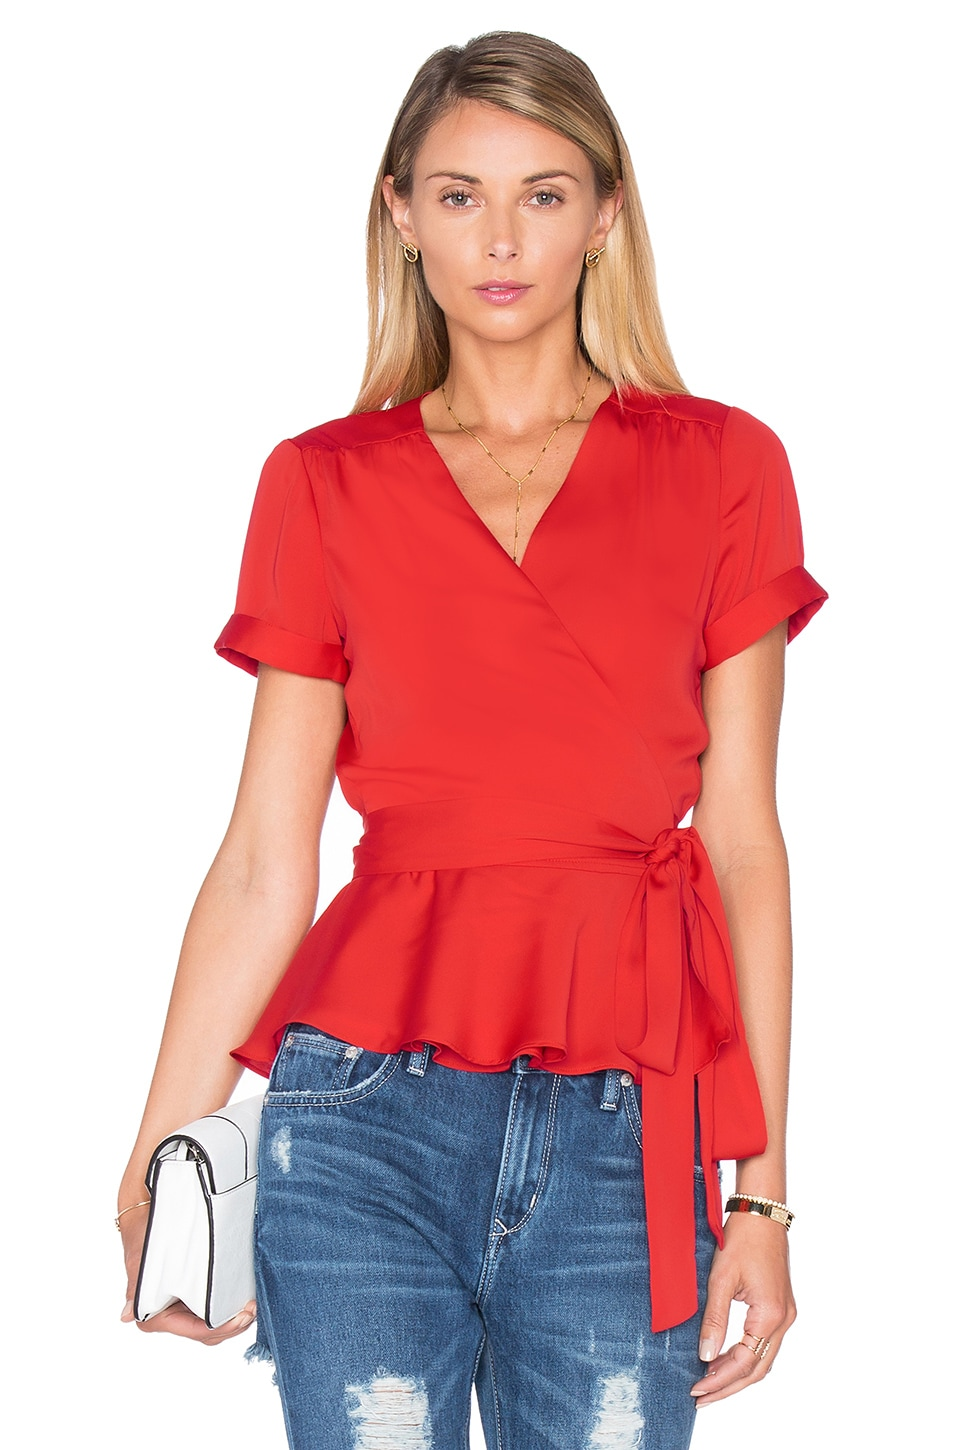 L'Academie The Retro Wrap Blouse in Red Clay